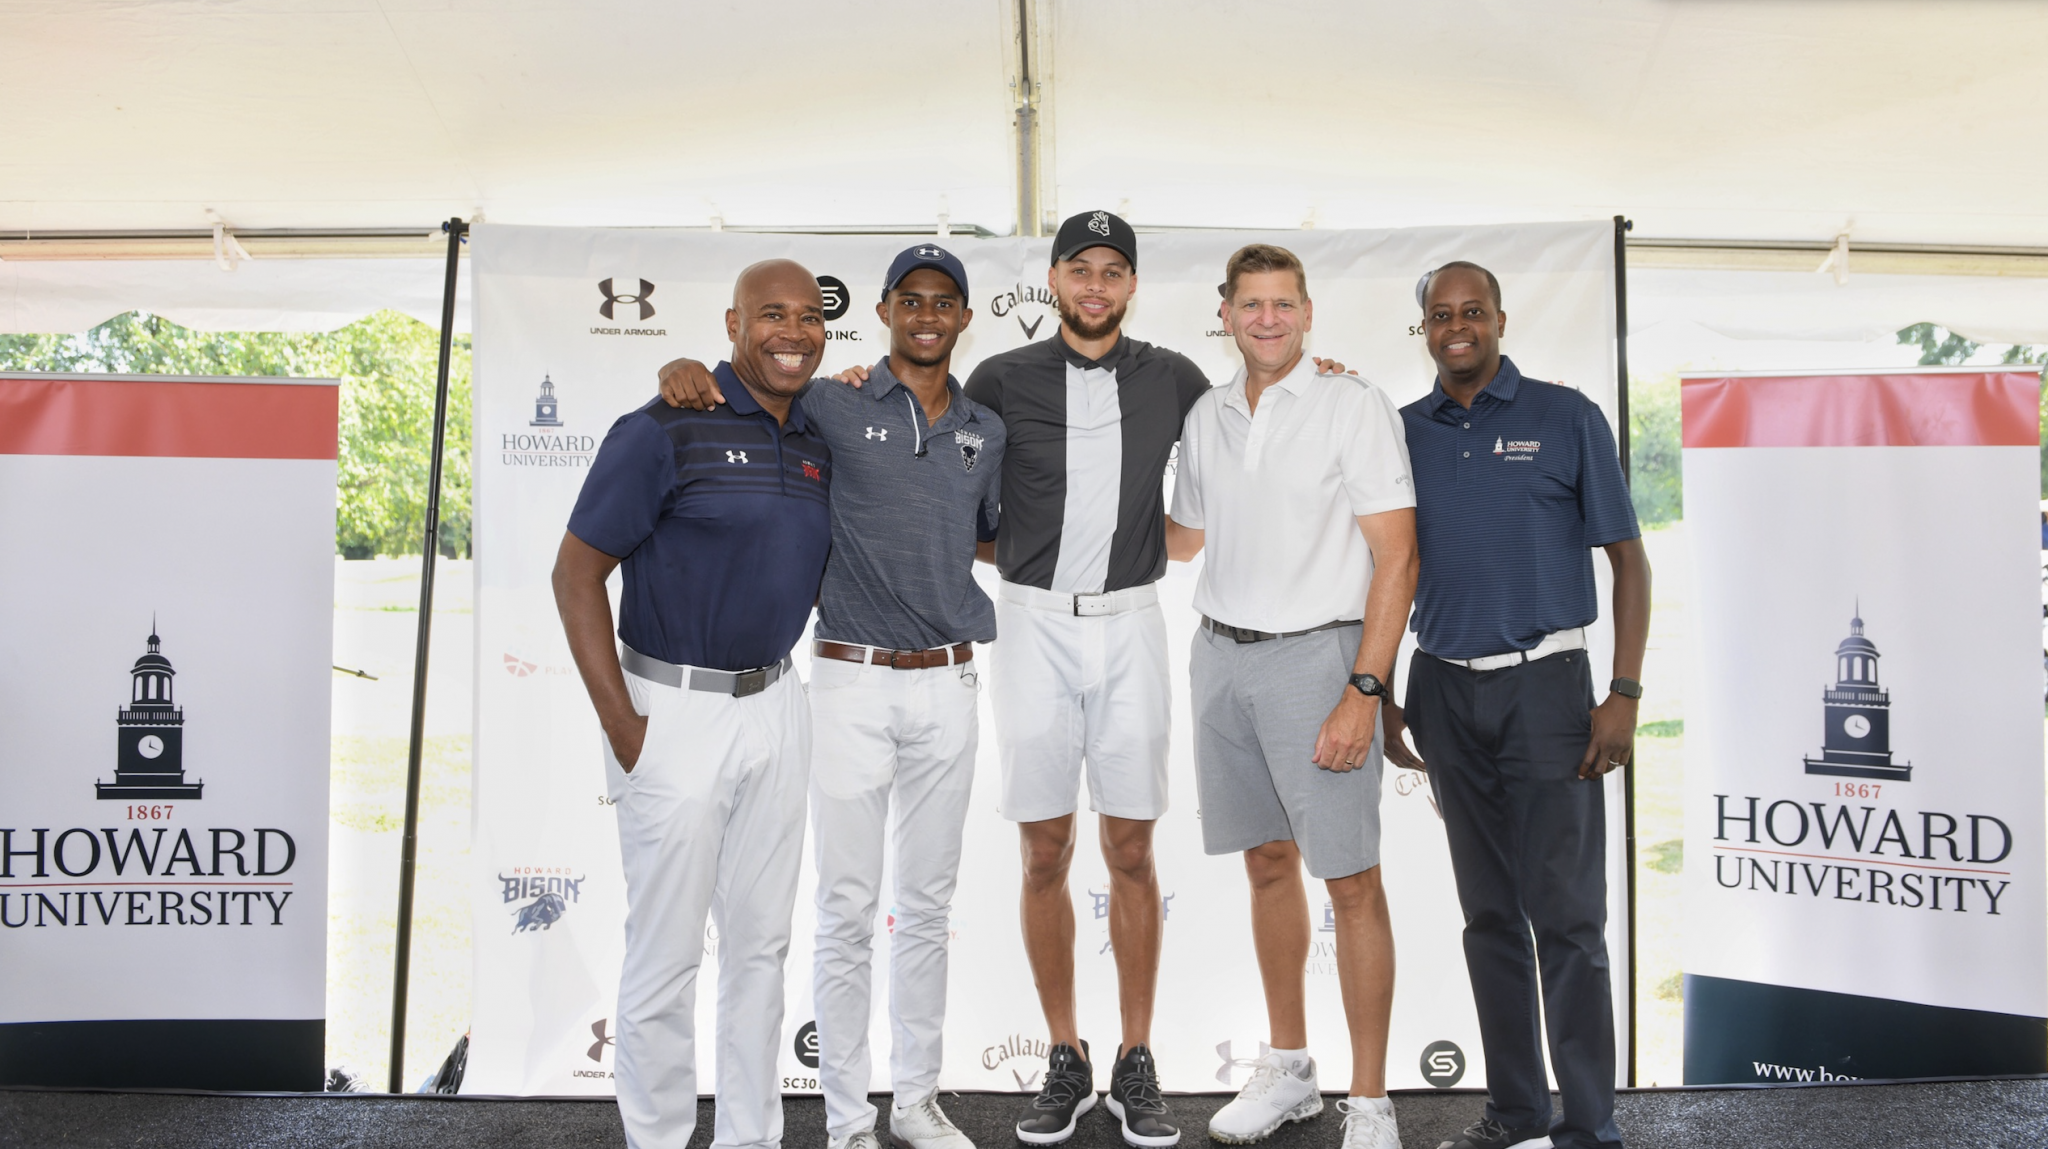 Stephen Curry, centre, will support the golf programme at Howard University ©Howard University